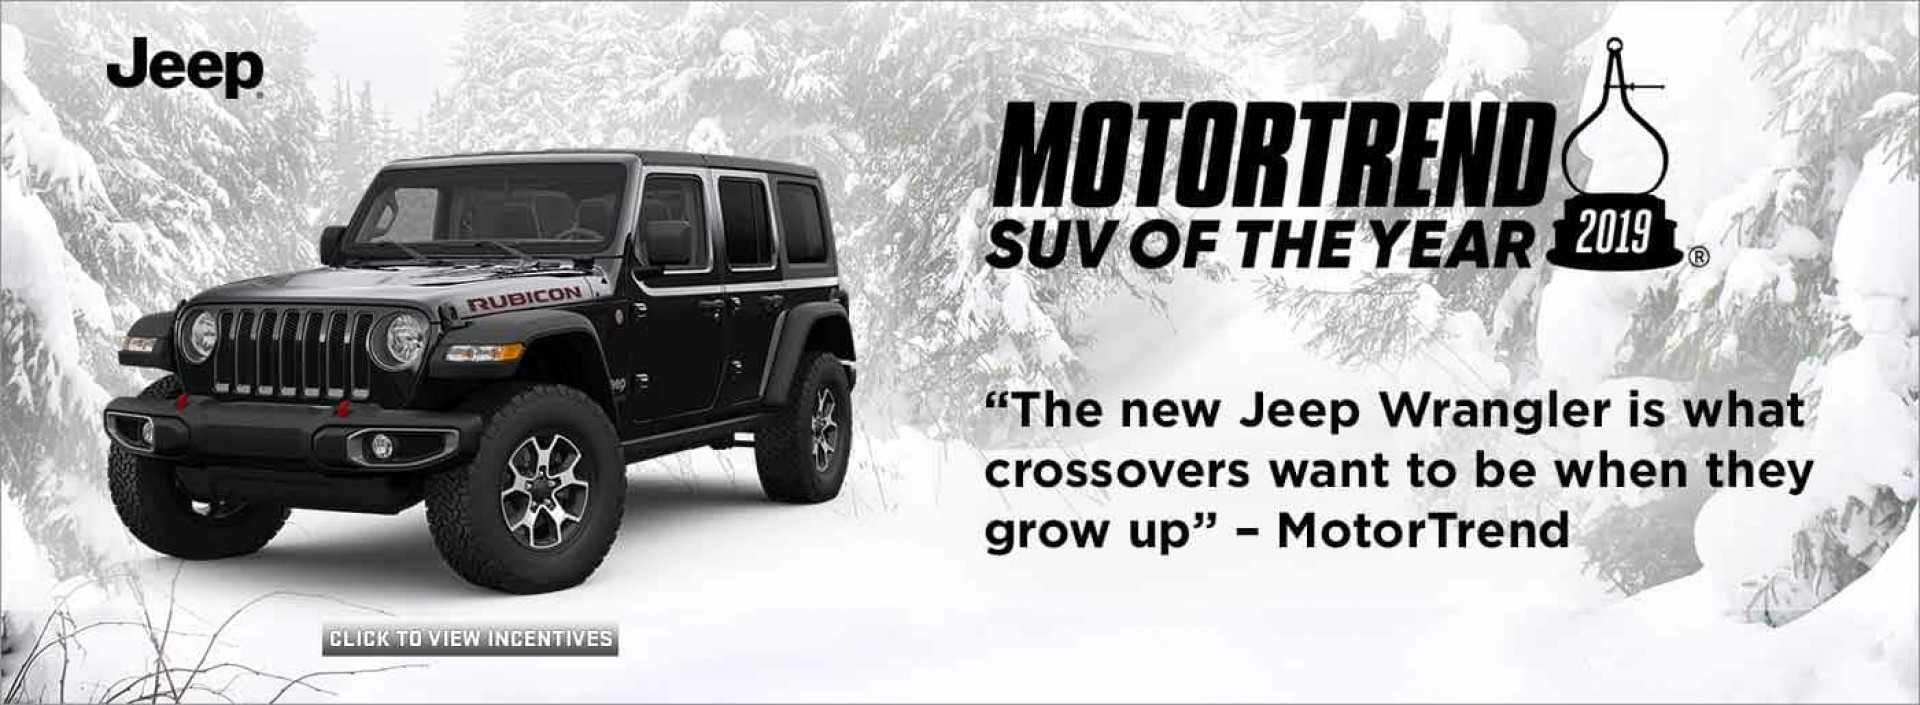 Jeep - Motortrend SUV of the Year